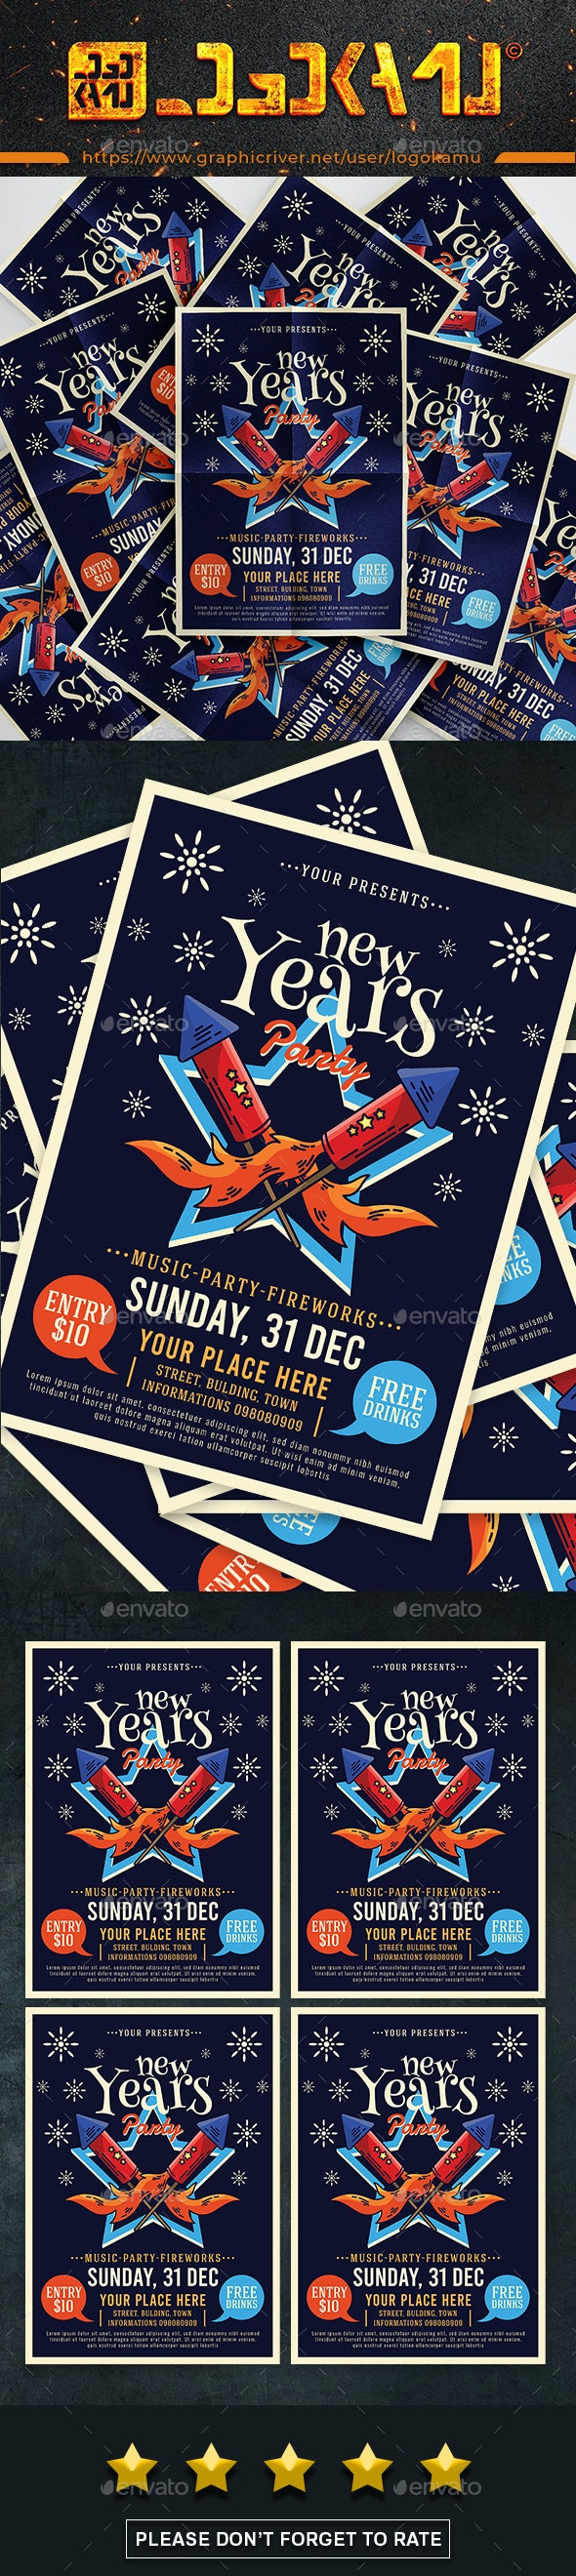 New Years Party Flyers - Events Flyers